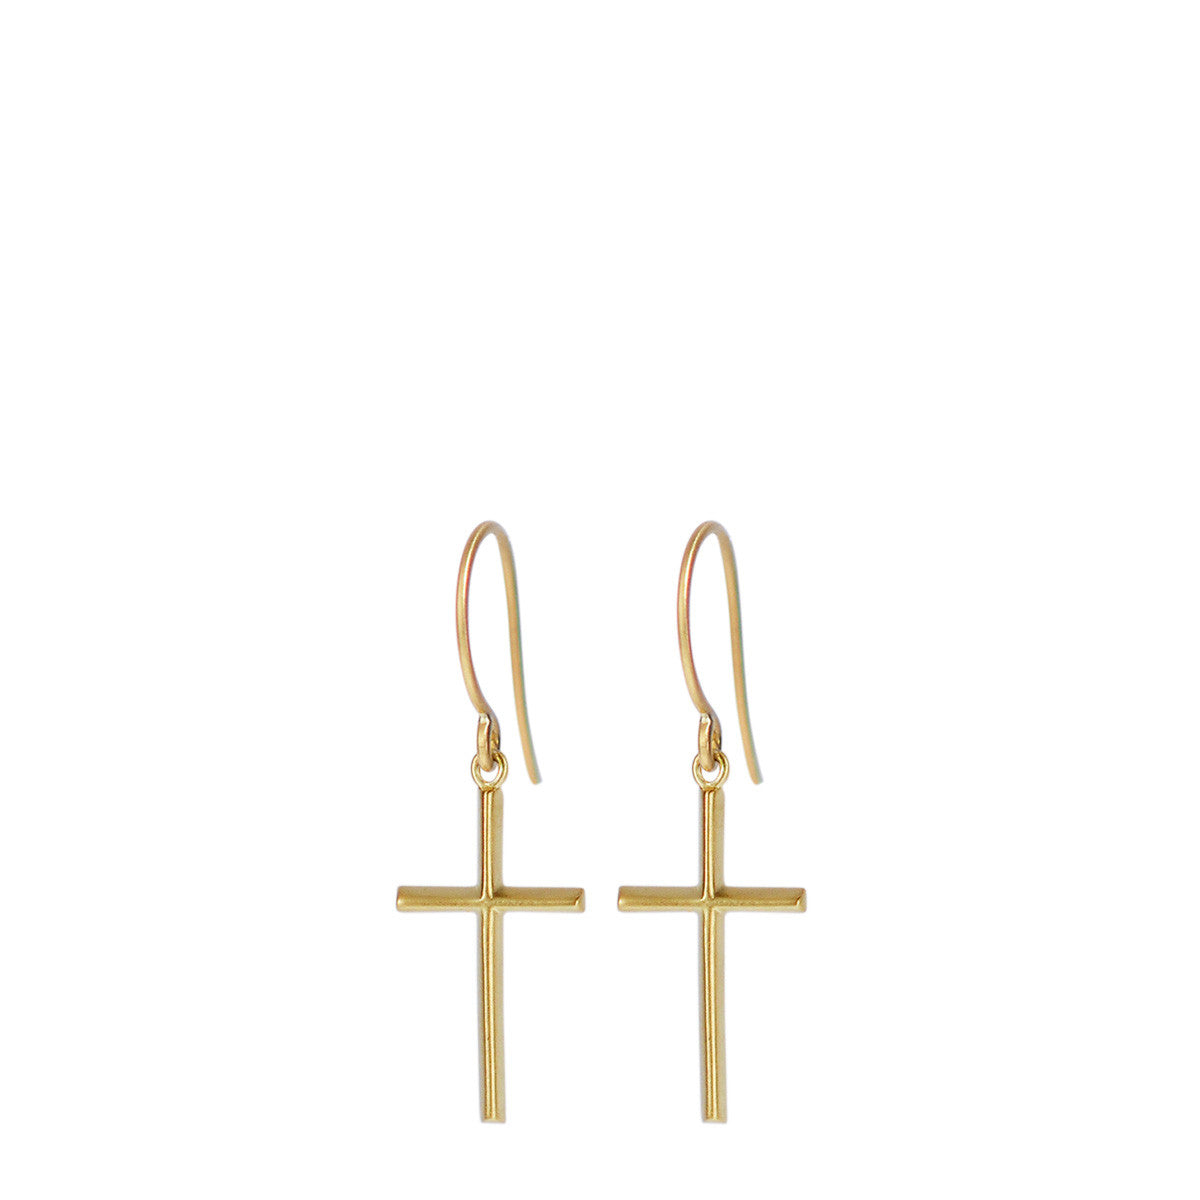 18K Gold Fine Cross Hanging Earrings